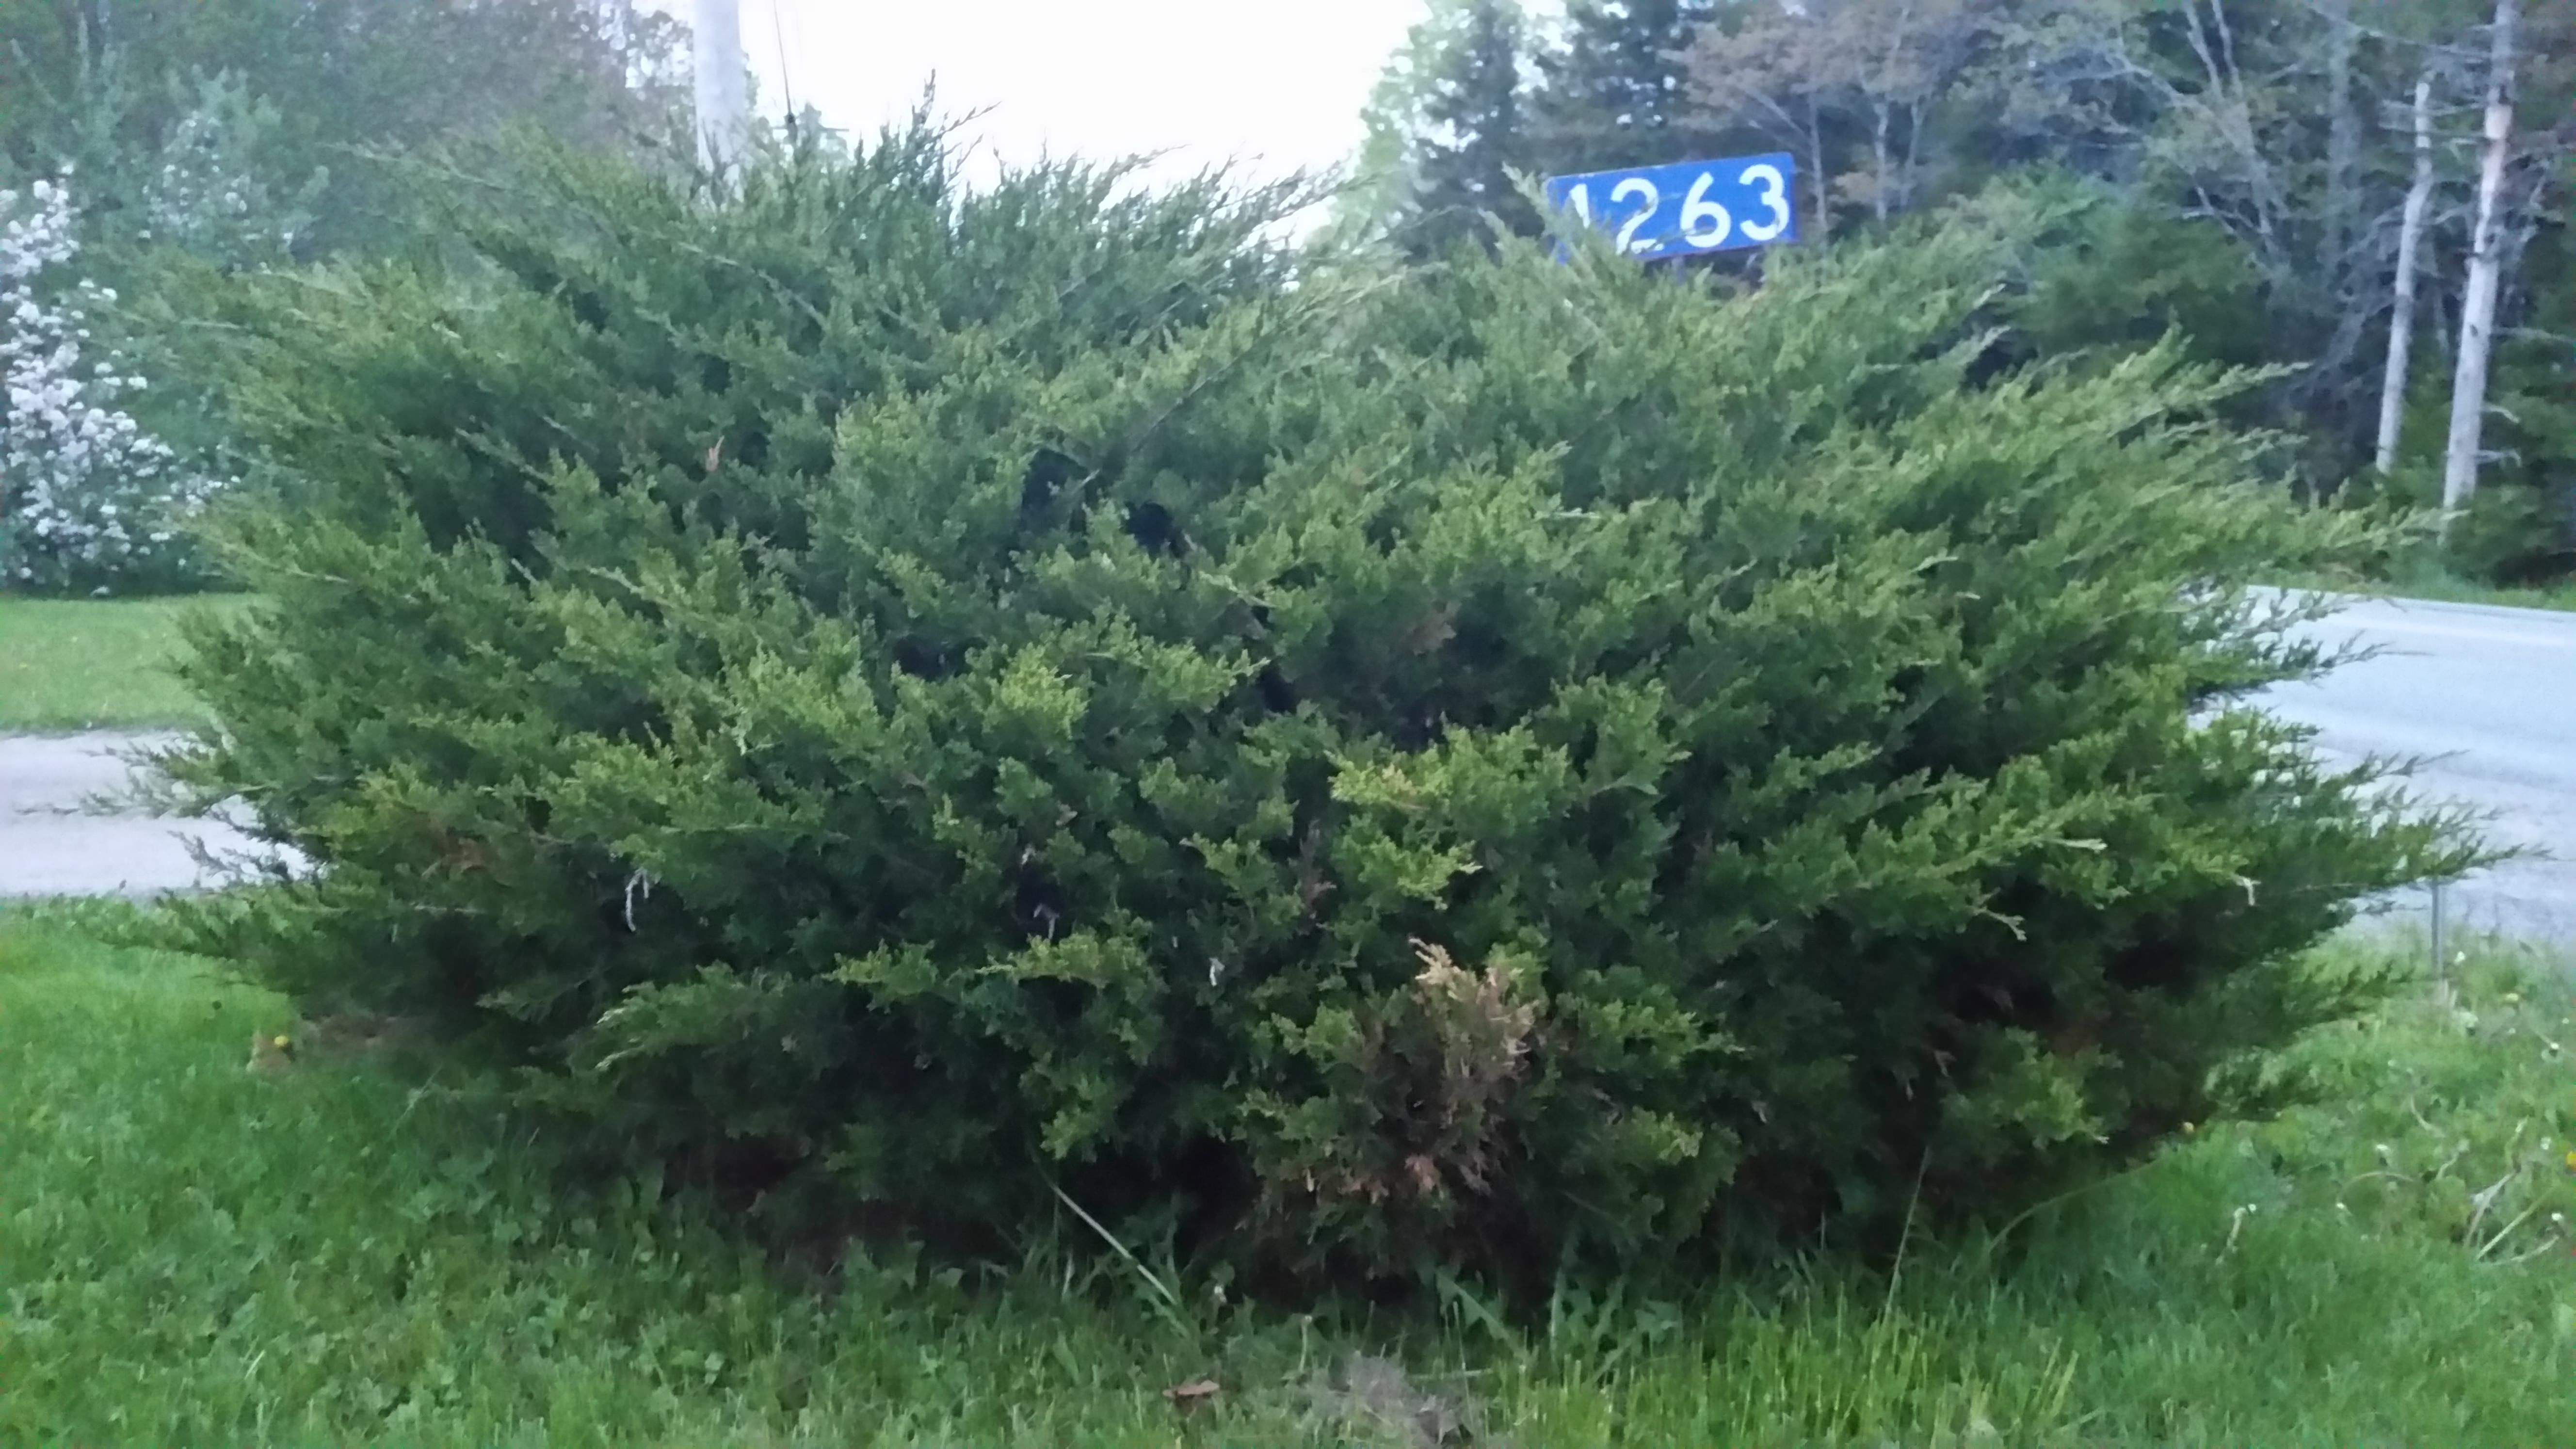 40 Fast Growing Shrubs and Bushes For Creating Privacy in